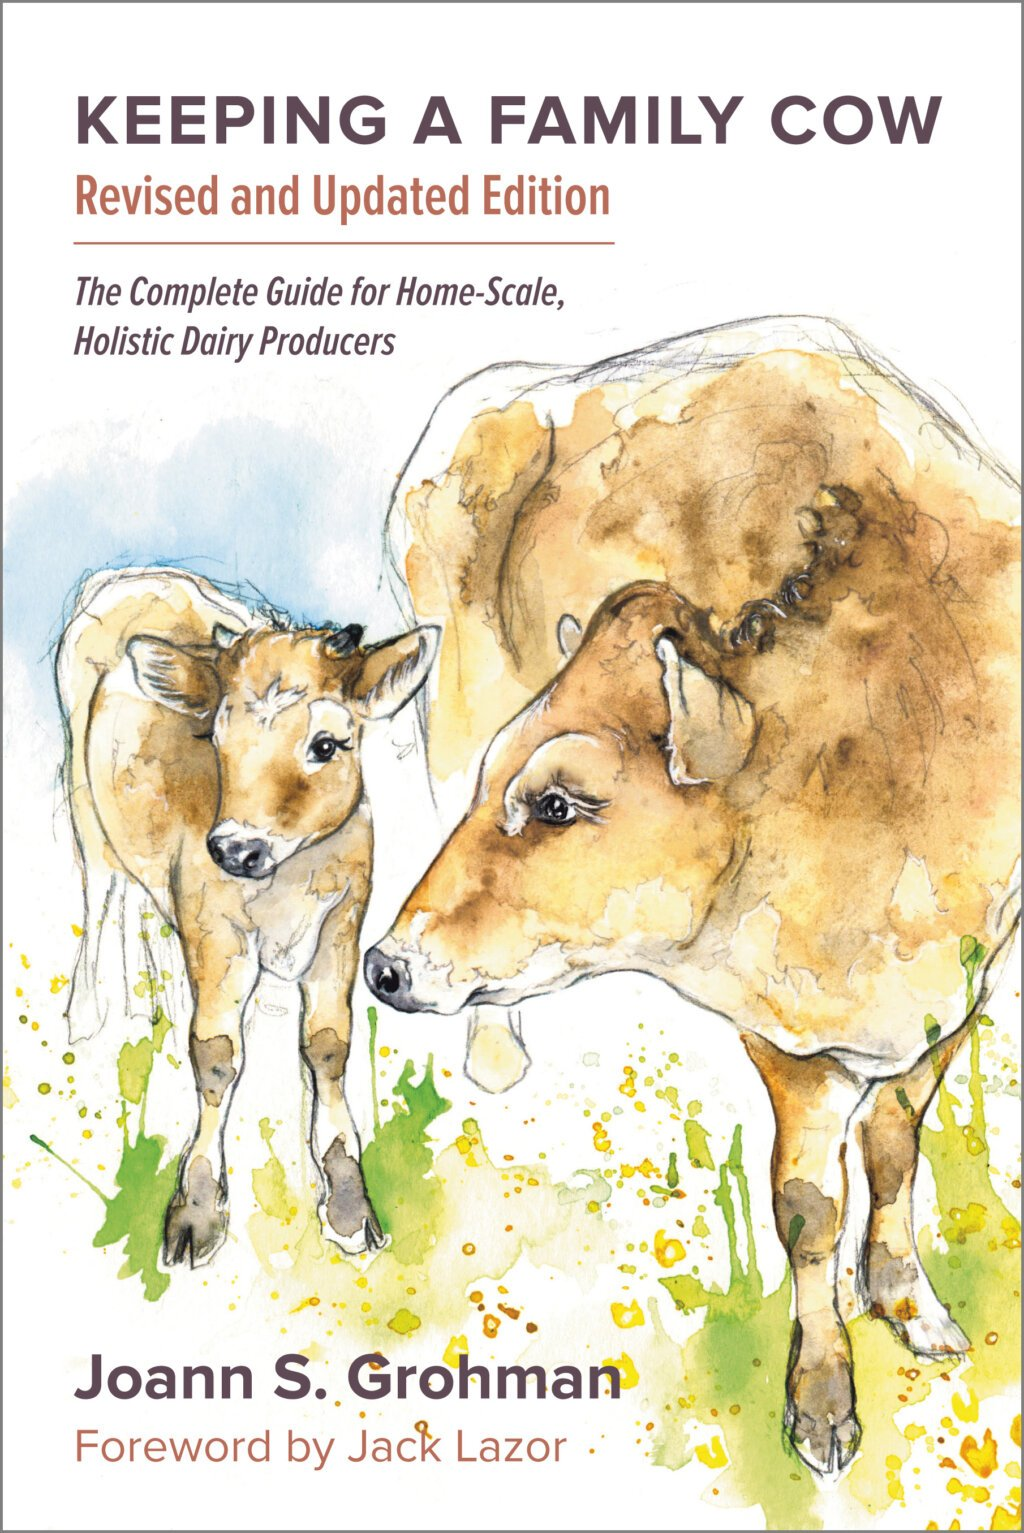 Keeping a Family Cow by Joann S  Grohman at Chelsea Green Publishing